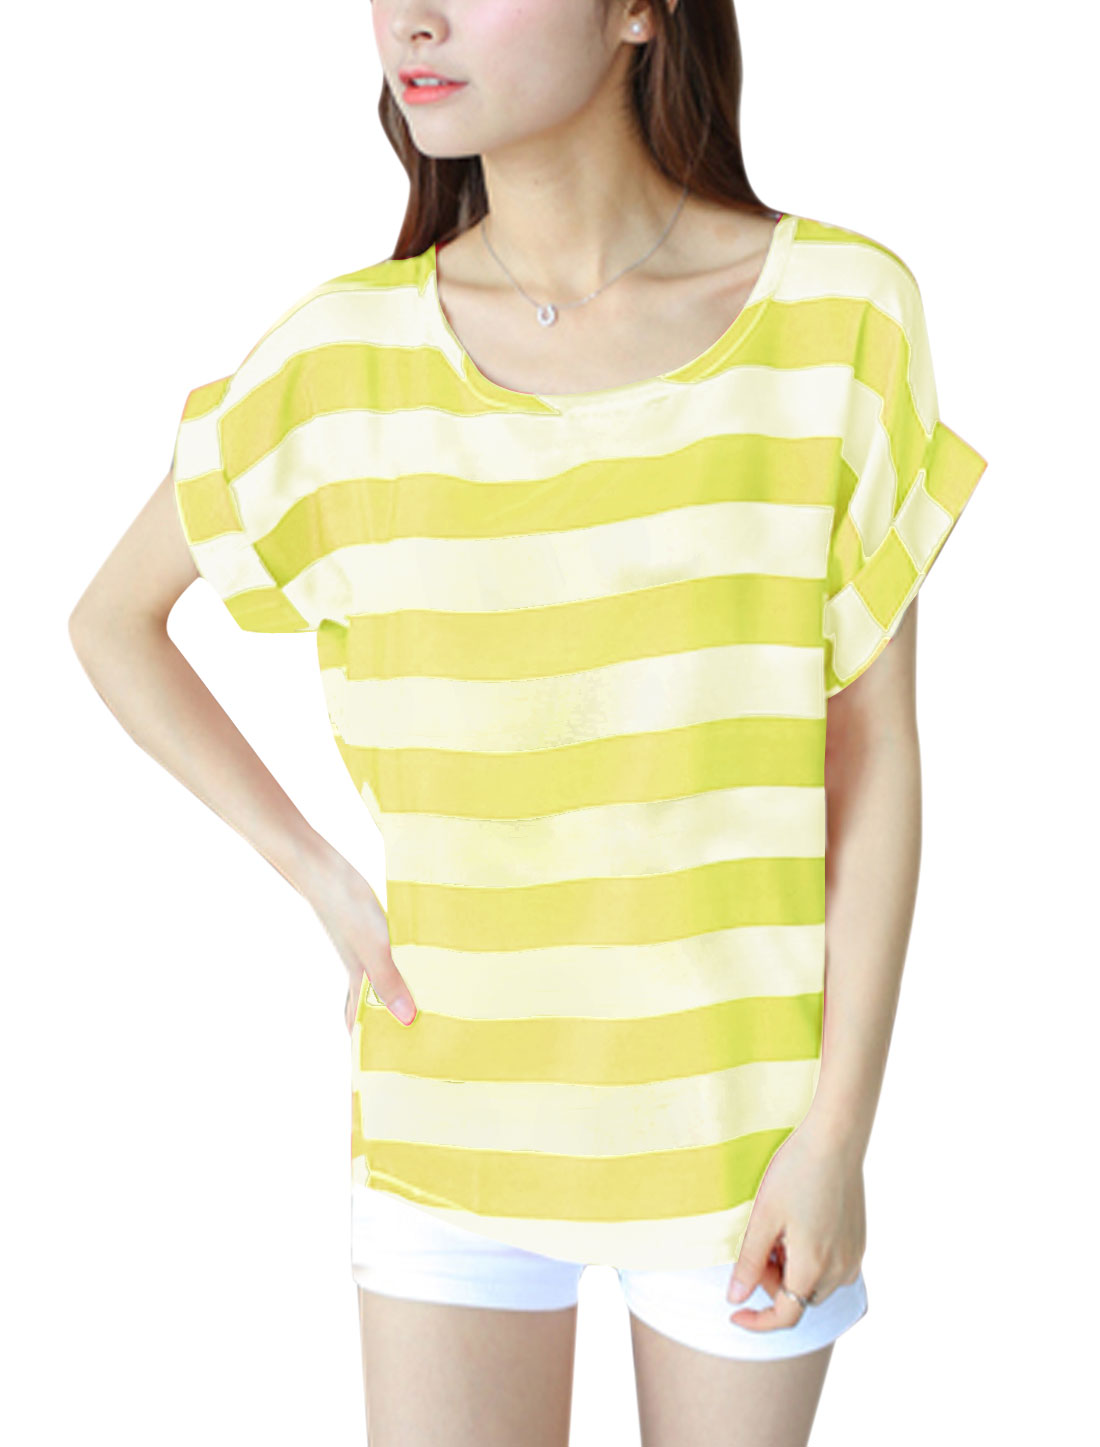 Lady U Neck Stripes T-Shirt Fluorescent Yellow XS